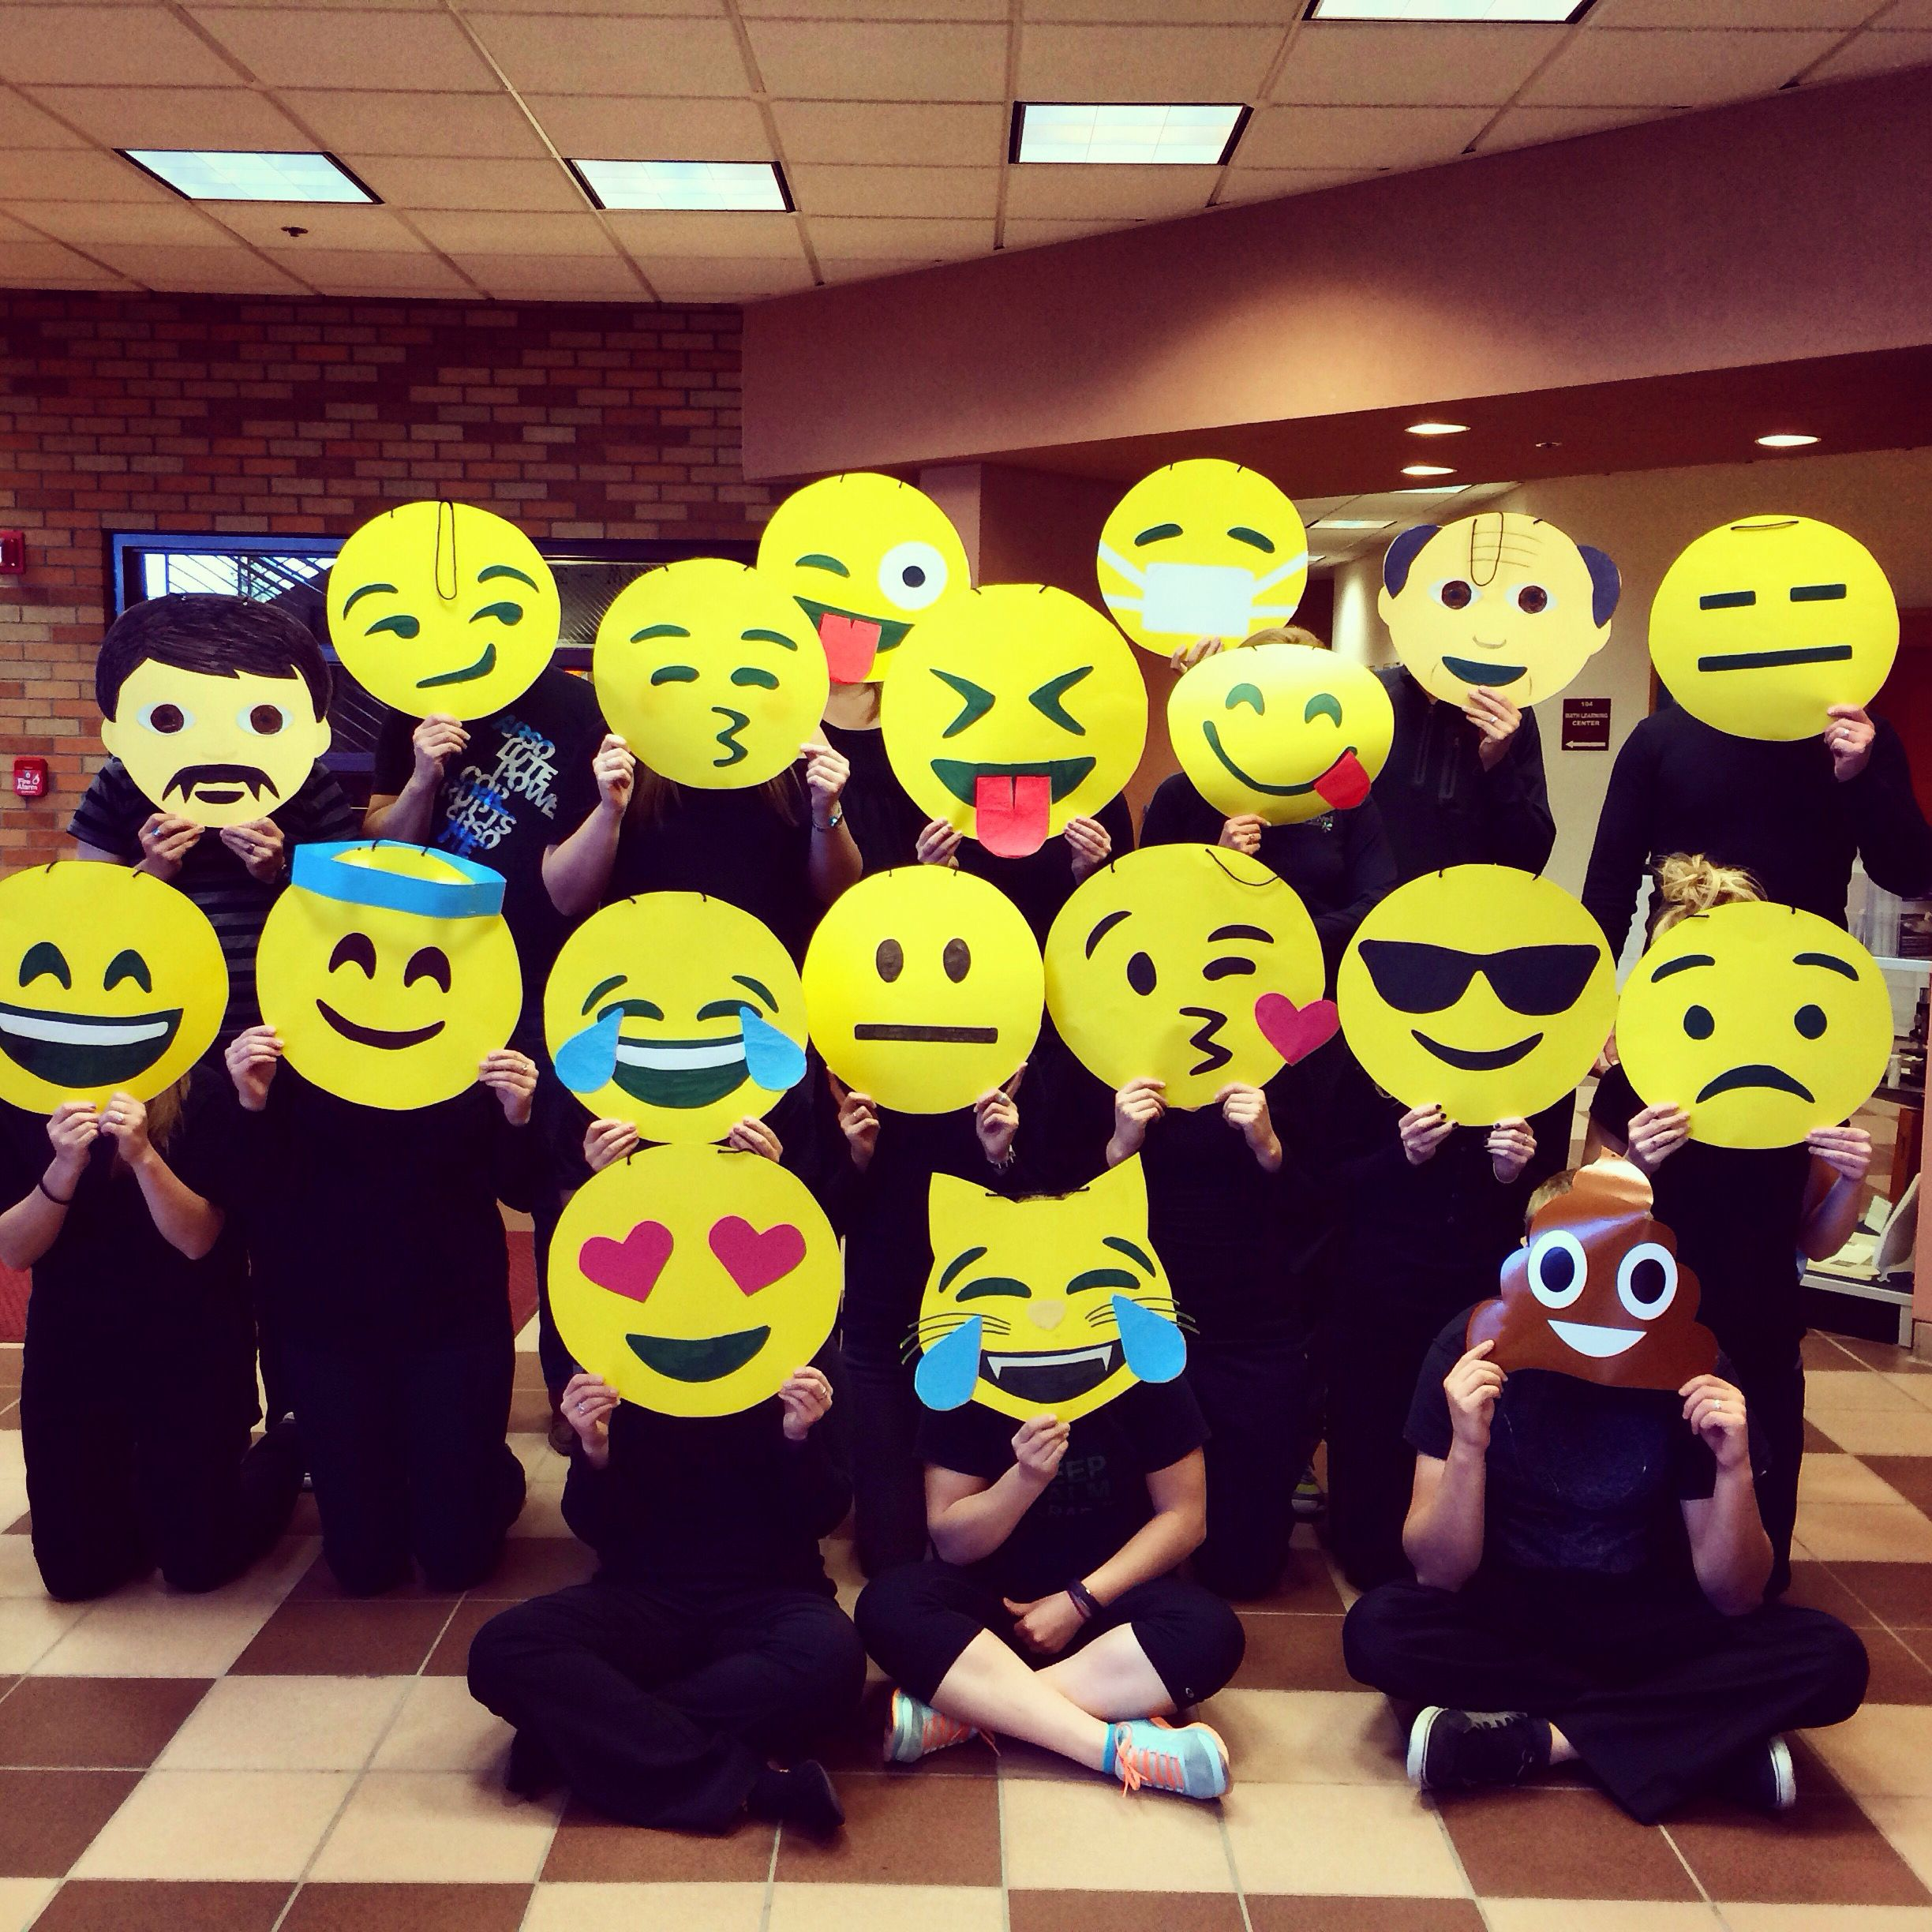 Group emoji costume cute halloween pinterest emoji costume group emoji costume cute solutioingenieria Gallery